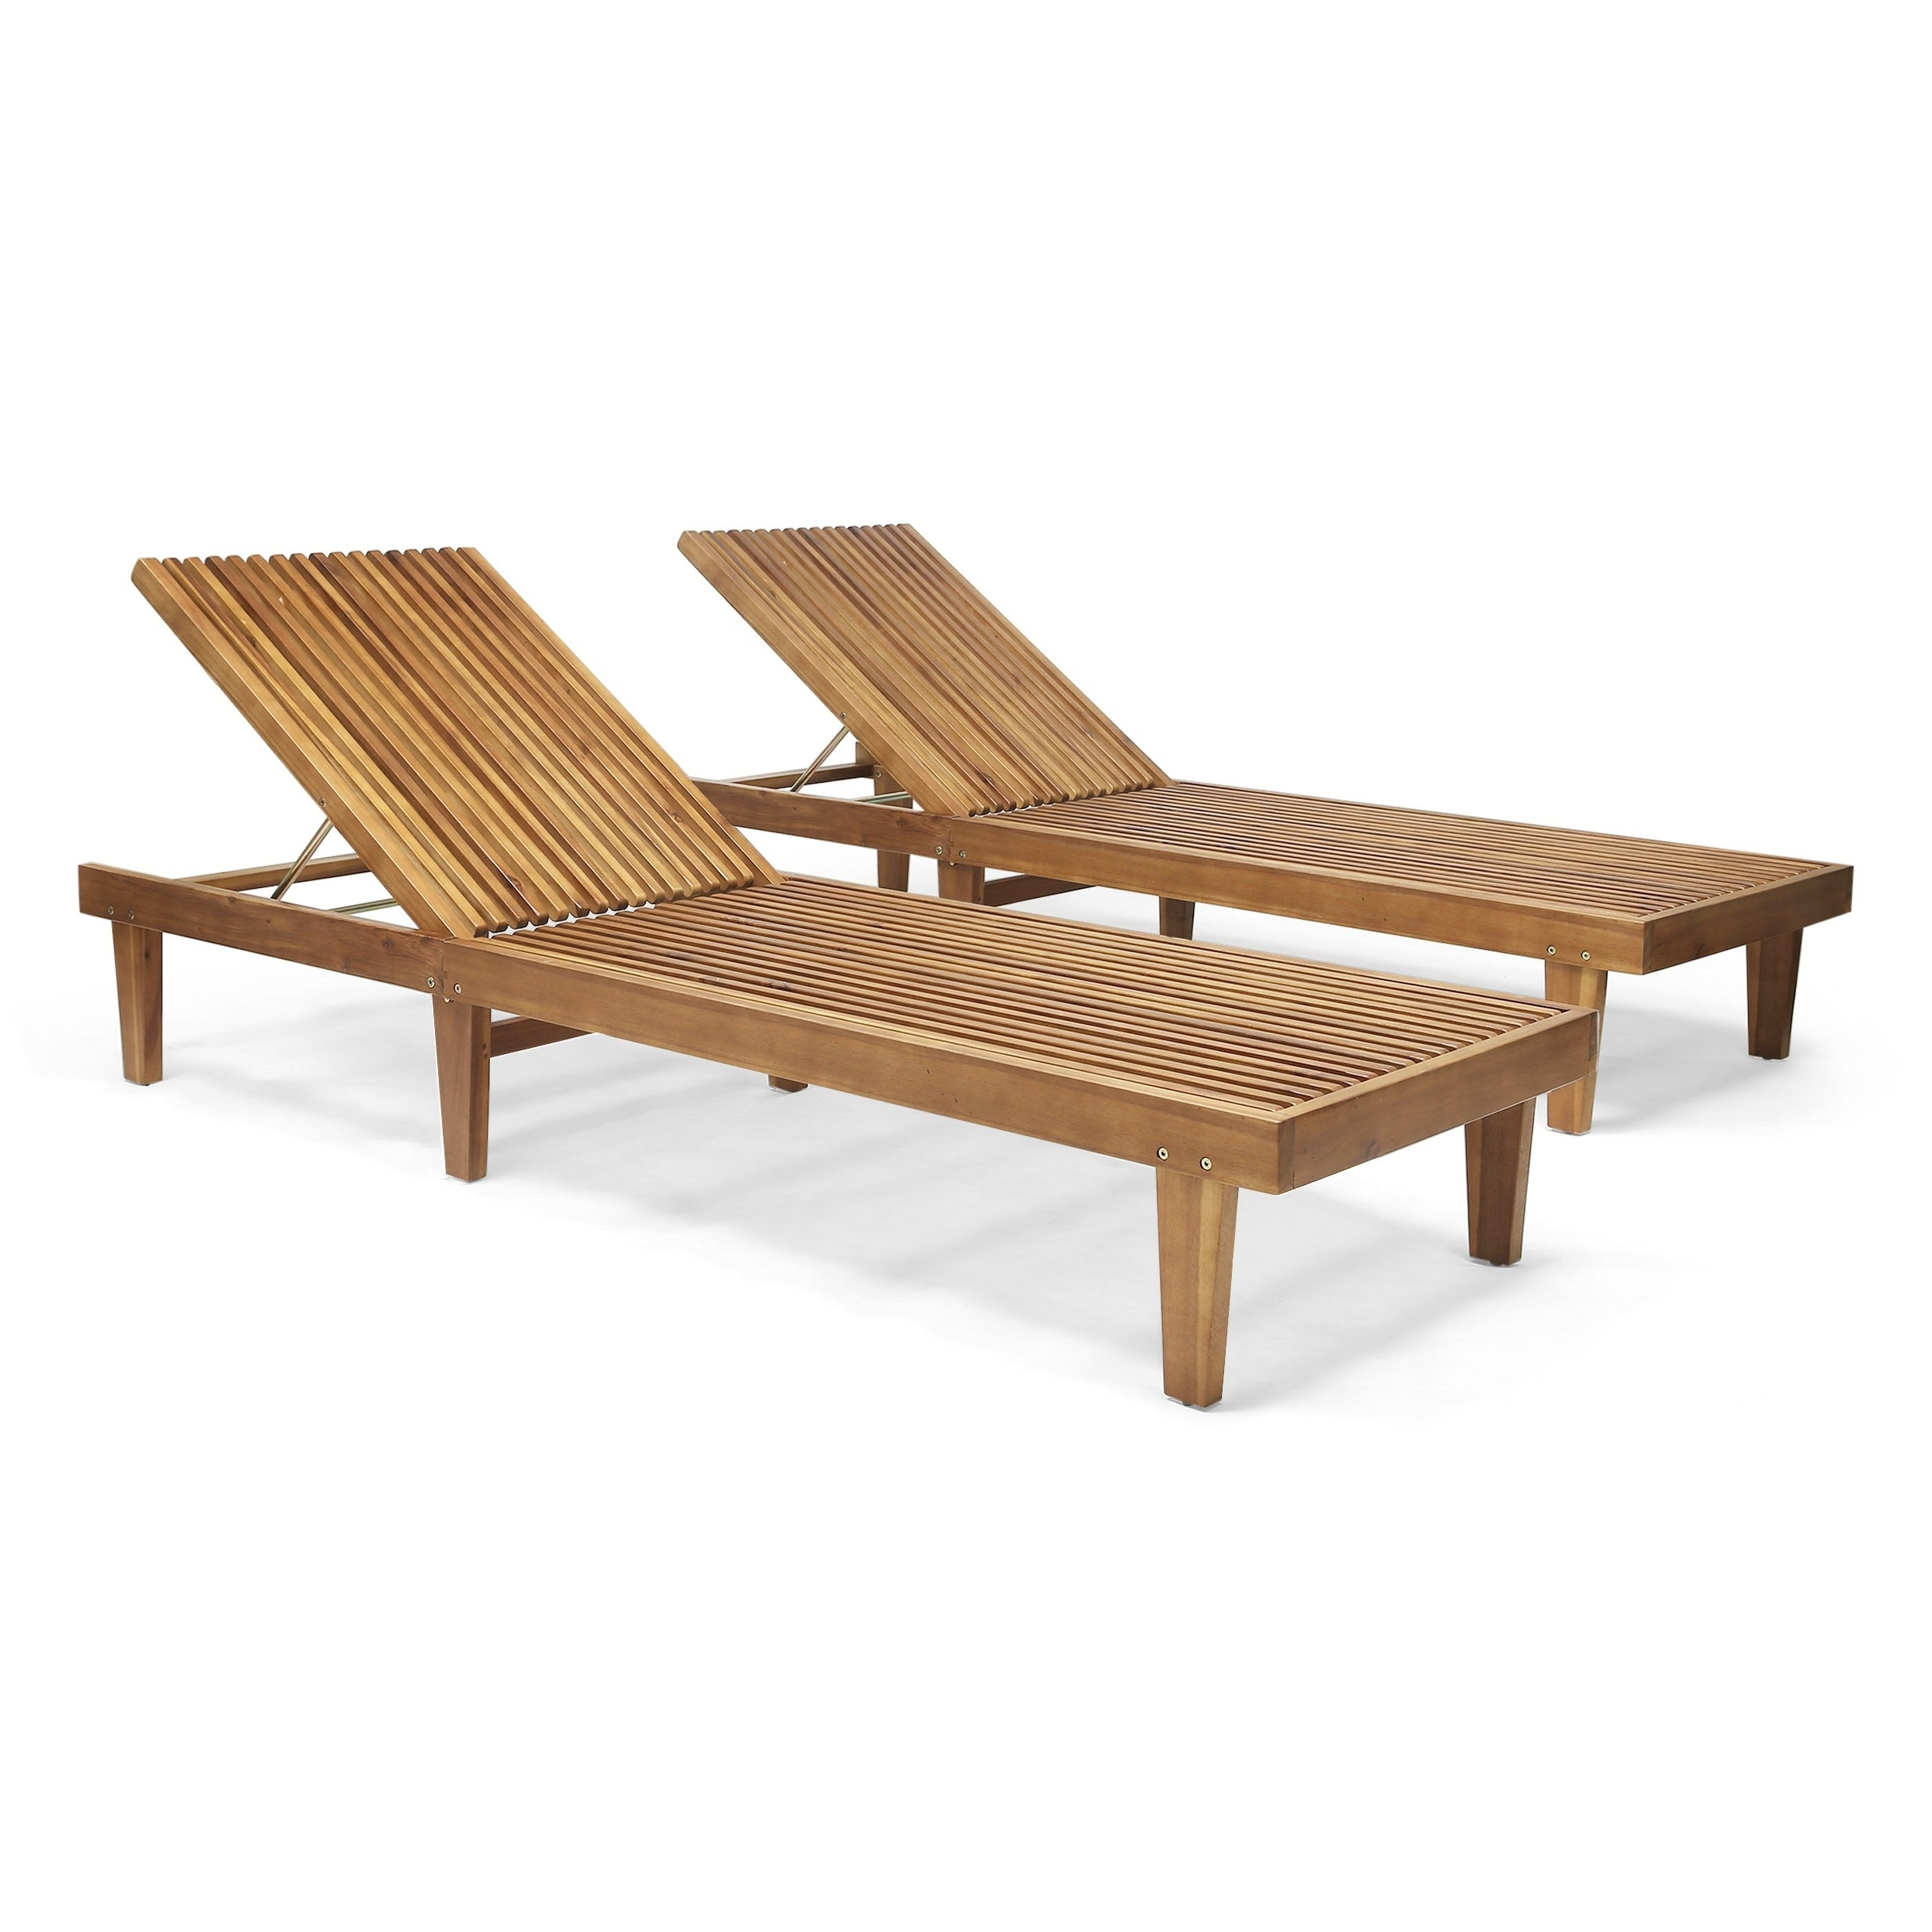 Details About Nadine Outdoor Adjustable Wood Chaise Lounge (set Of 2) By With 2020 Outdoor Adjustable Wood Chaise Lounges (View 3 of 25)